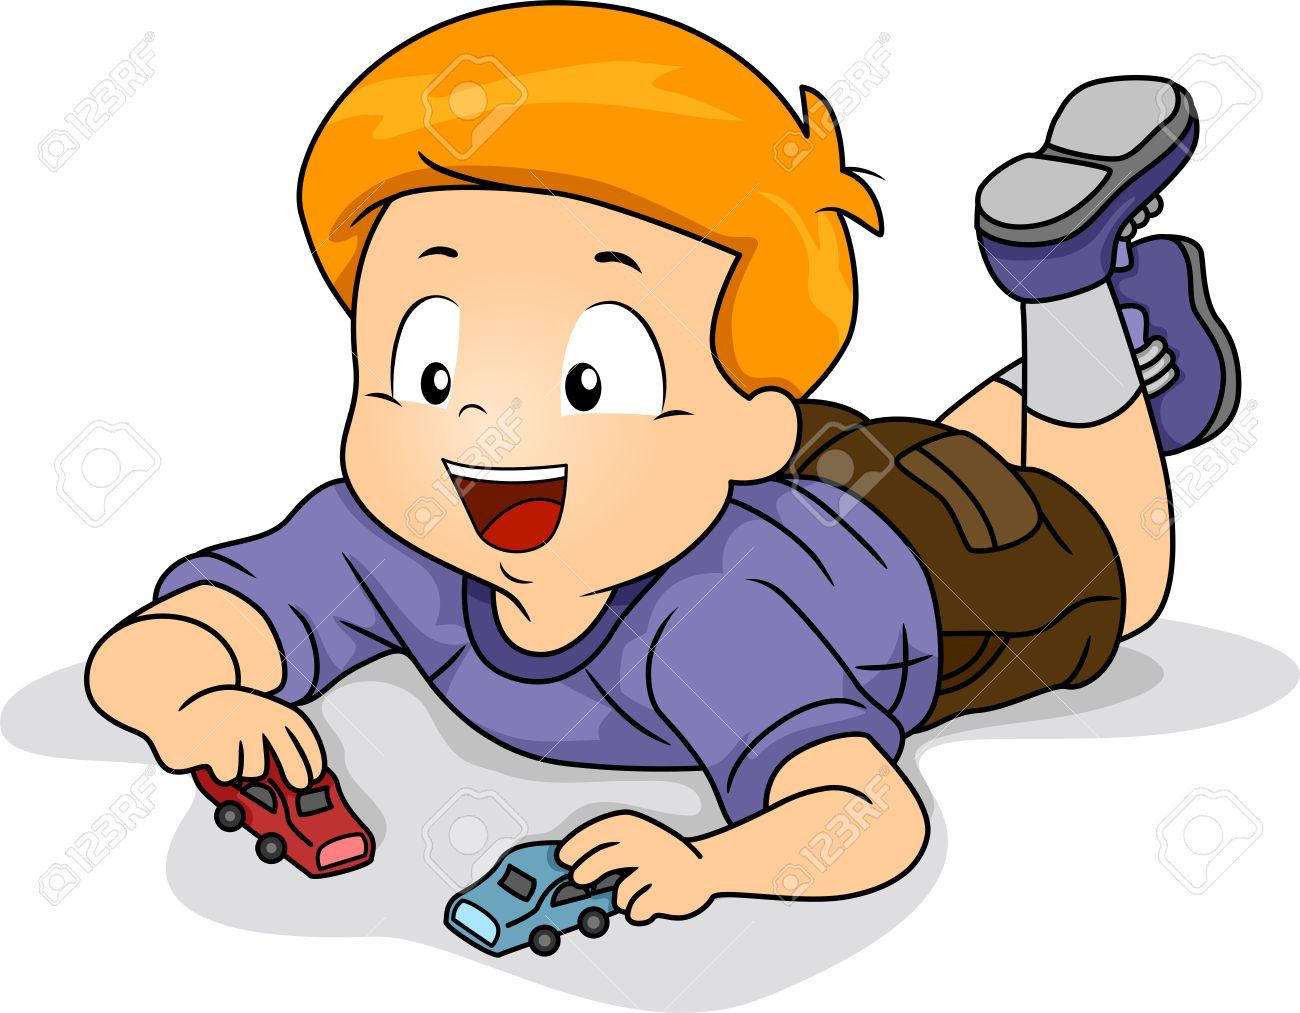 Playing With Toys Clipart   Free download on ClipArtMag